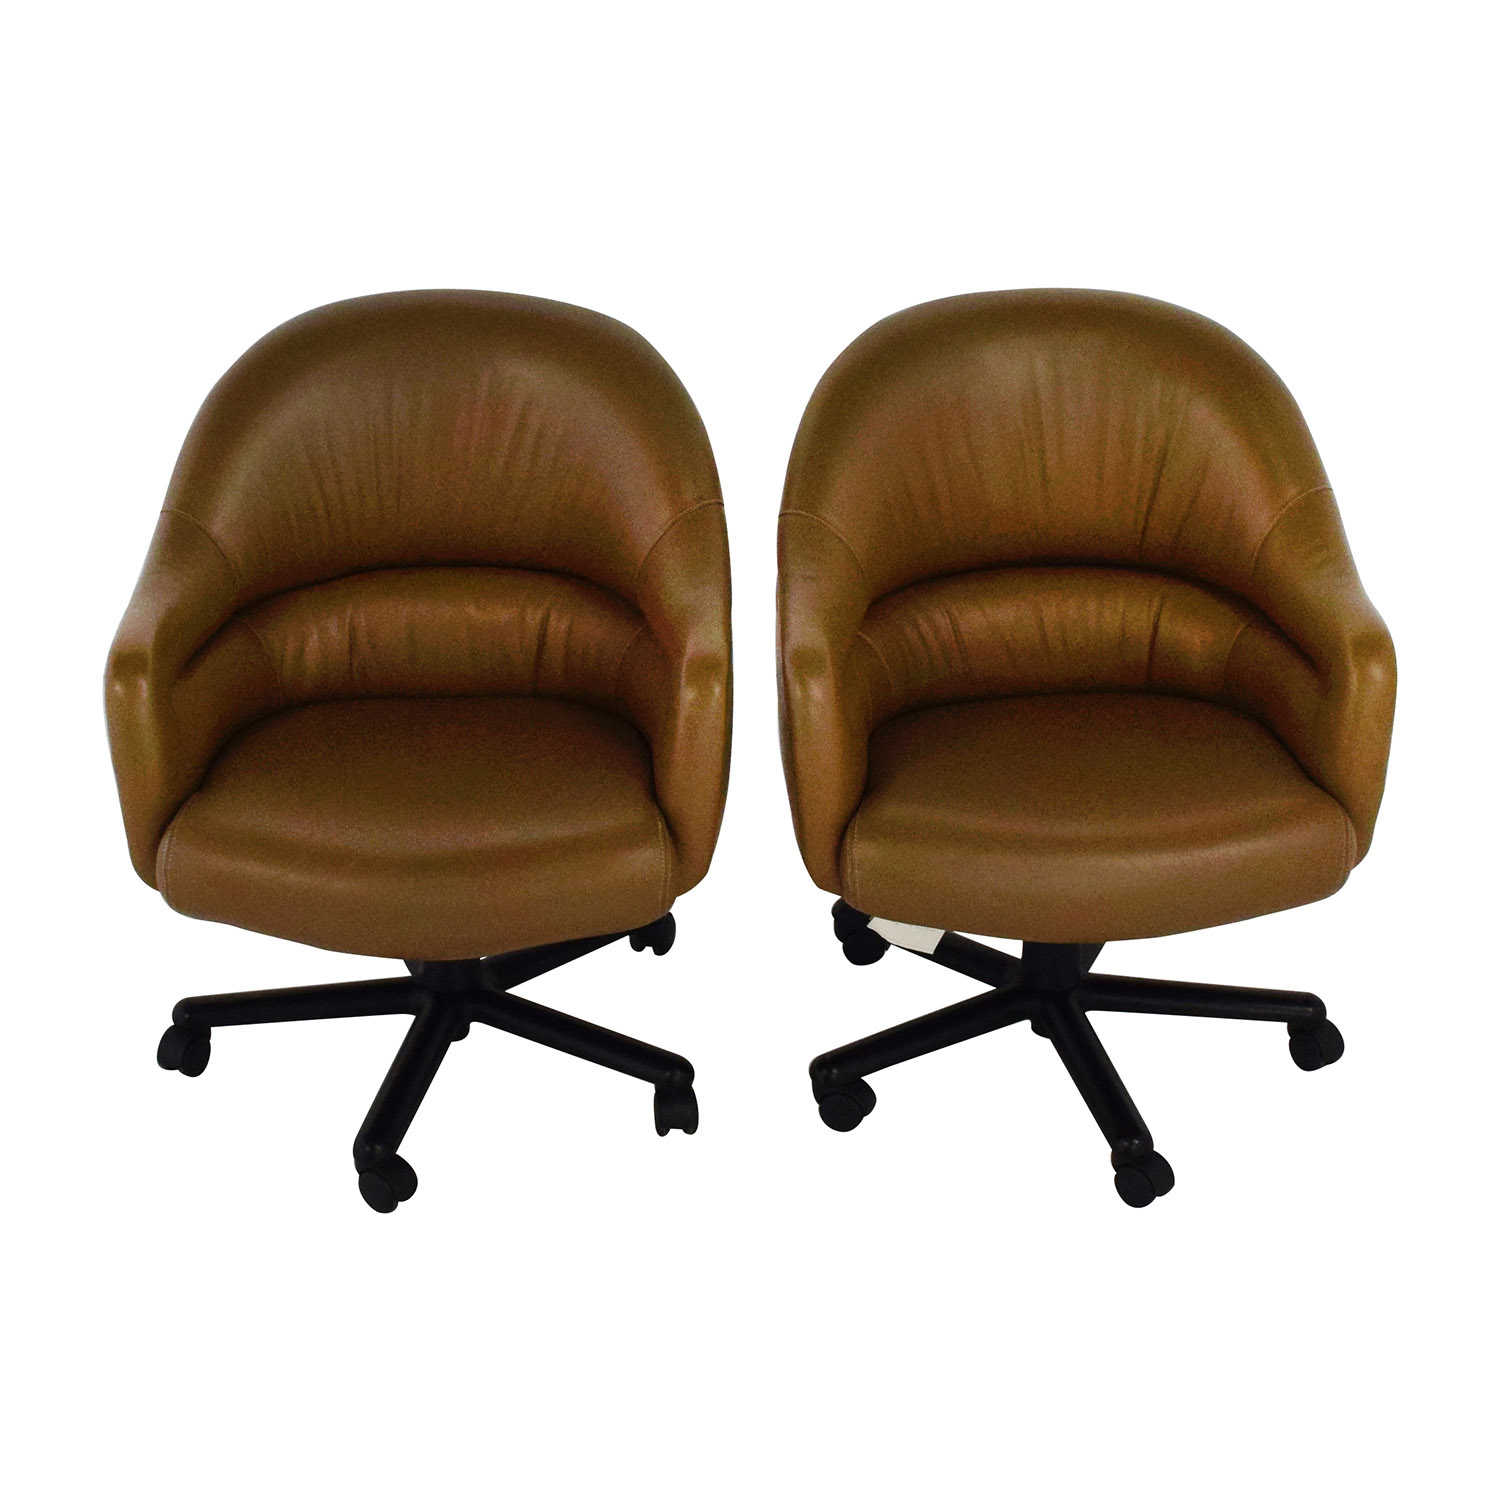 Accent Chairs Prices Accent Chairs Used Accent Chairs For Sale